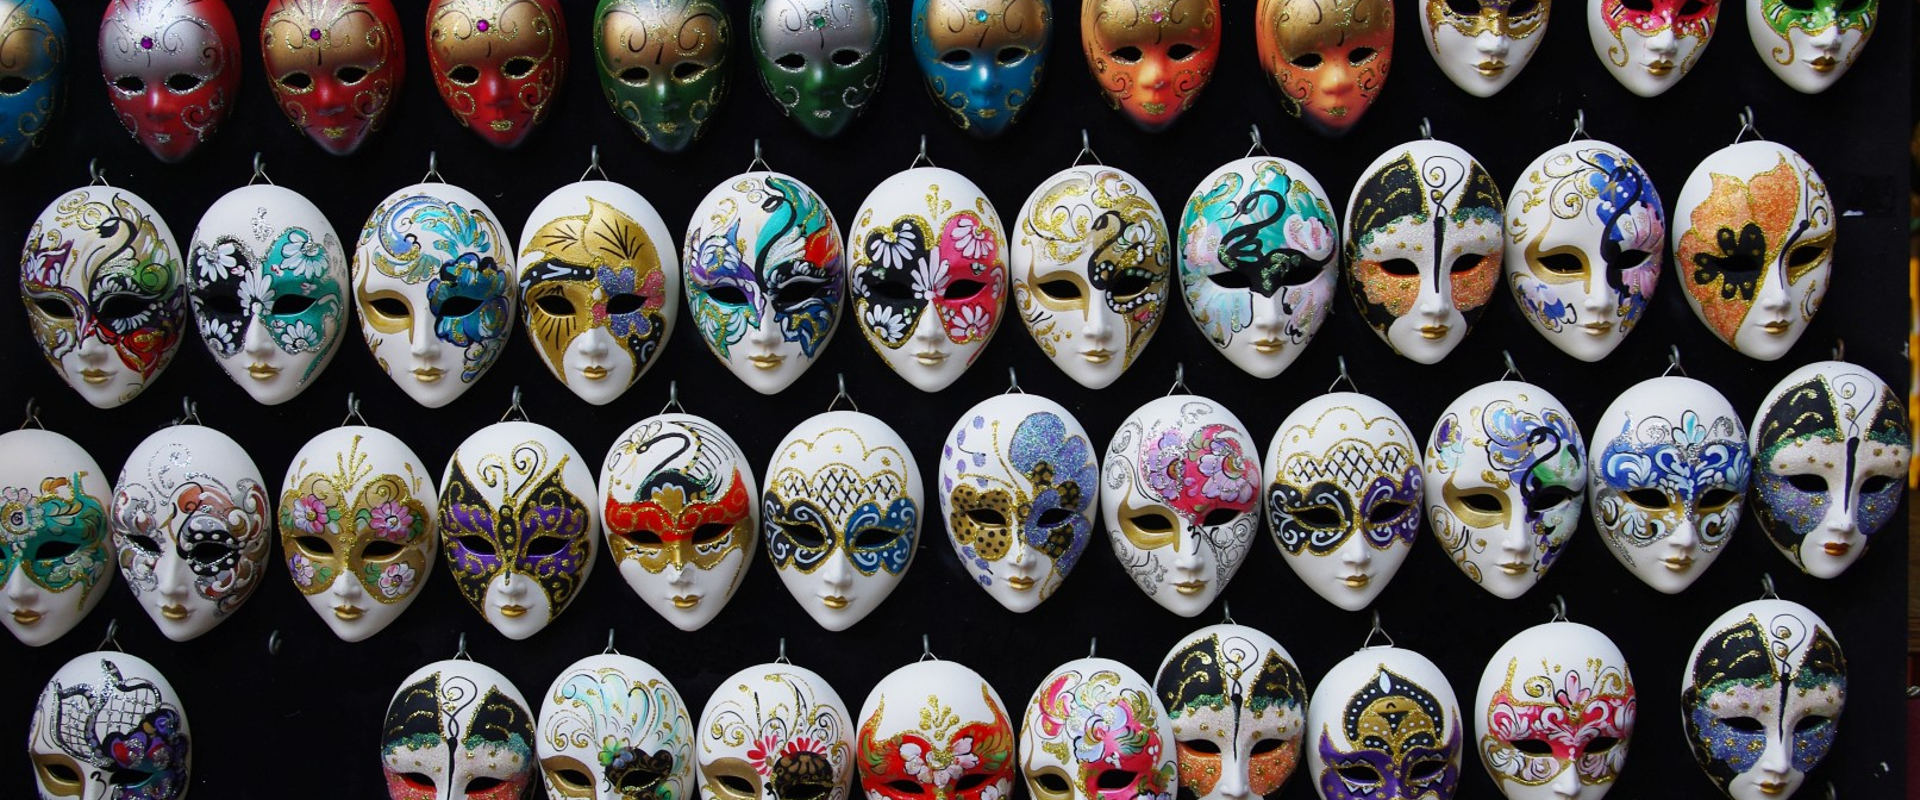 did you know that in venice in 1600 masks were used throughout the year